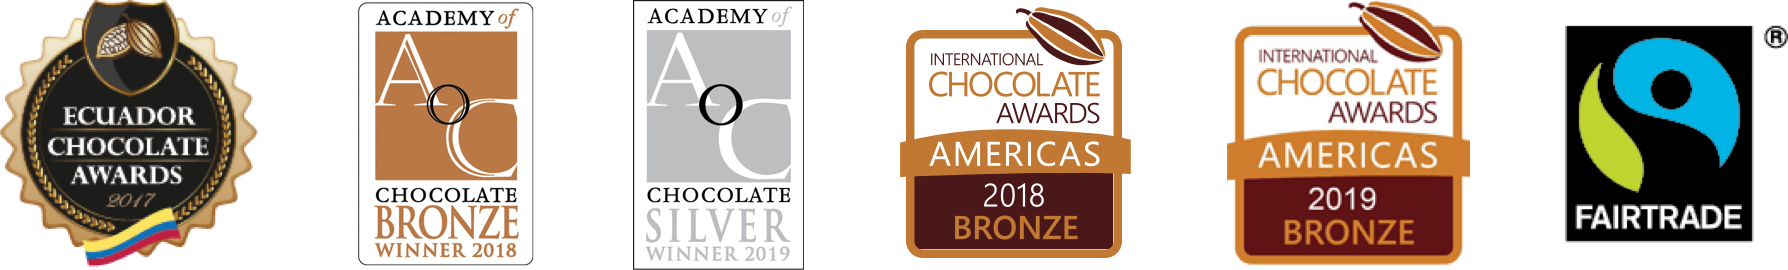 Ecuador Chocolate Awards, Academy of Chocolate Bronze winner 2018, Academy of Chocolate Silver winner 2019, Bronze Chocolate award 2018, Bronze Chocolate award 2019, fairtrade award